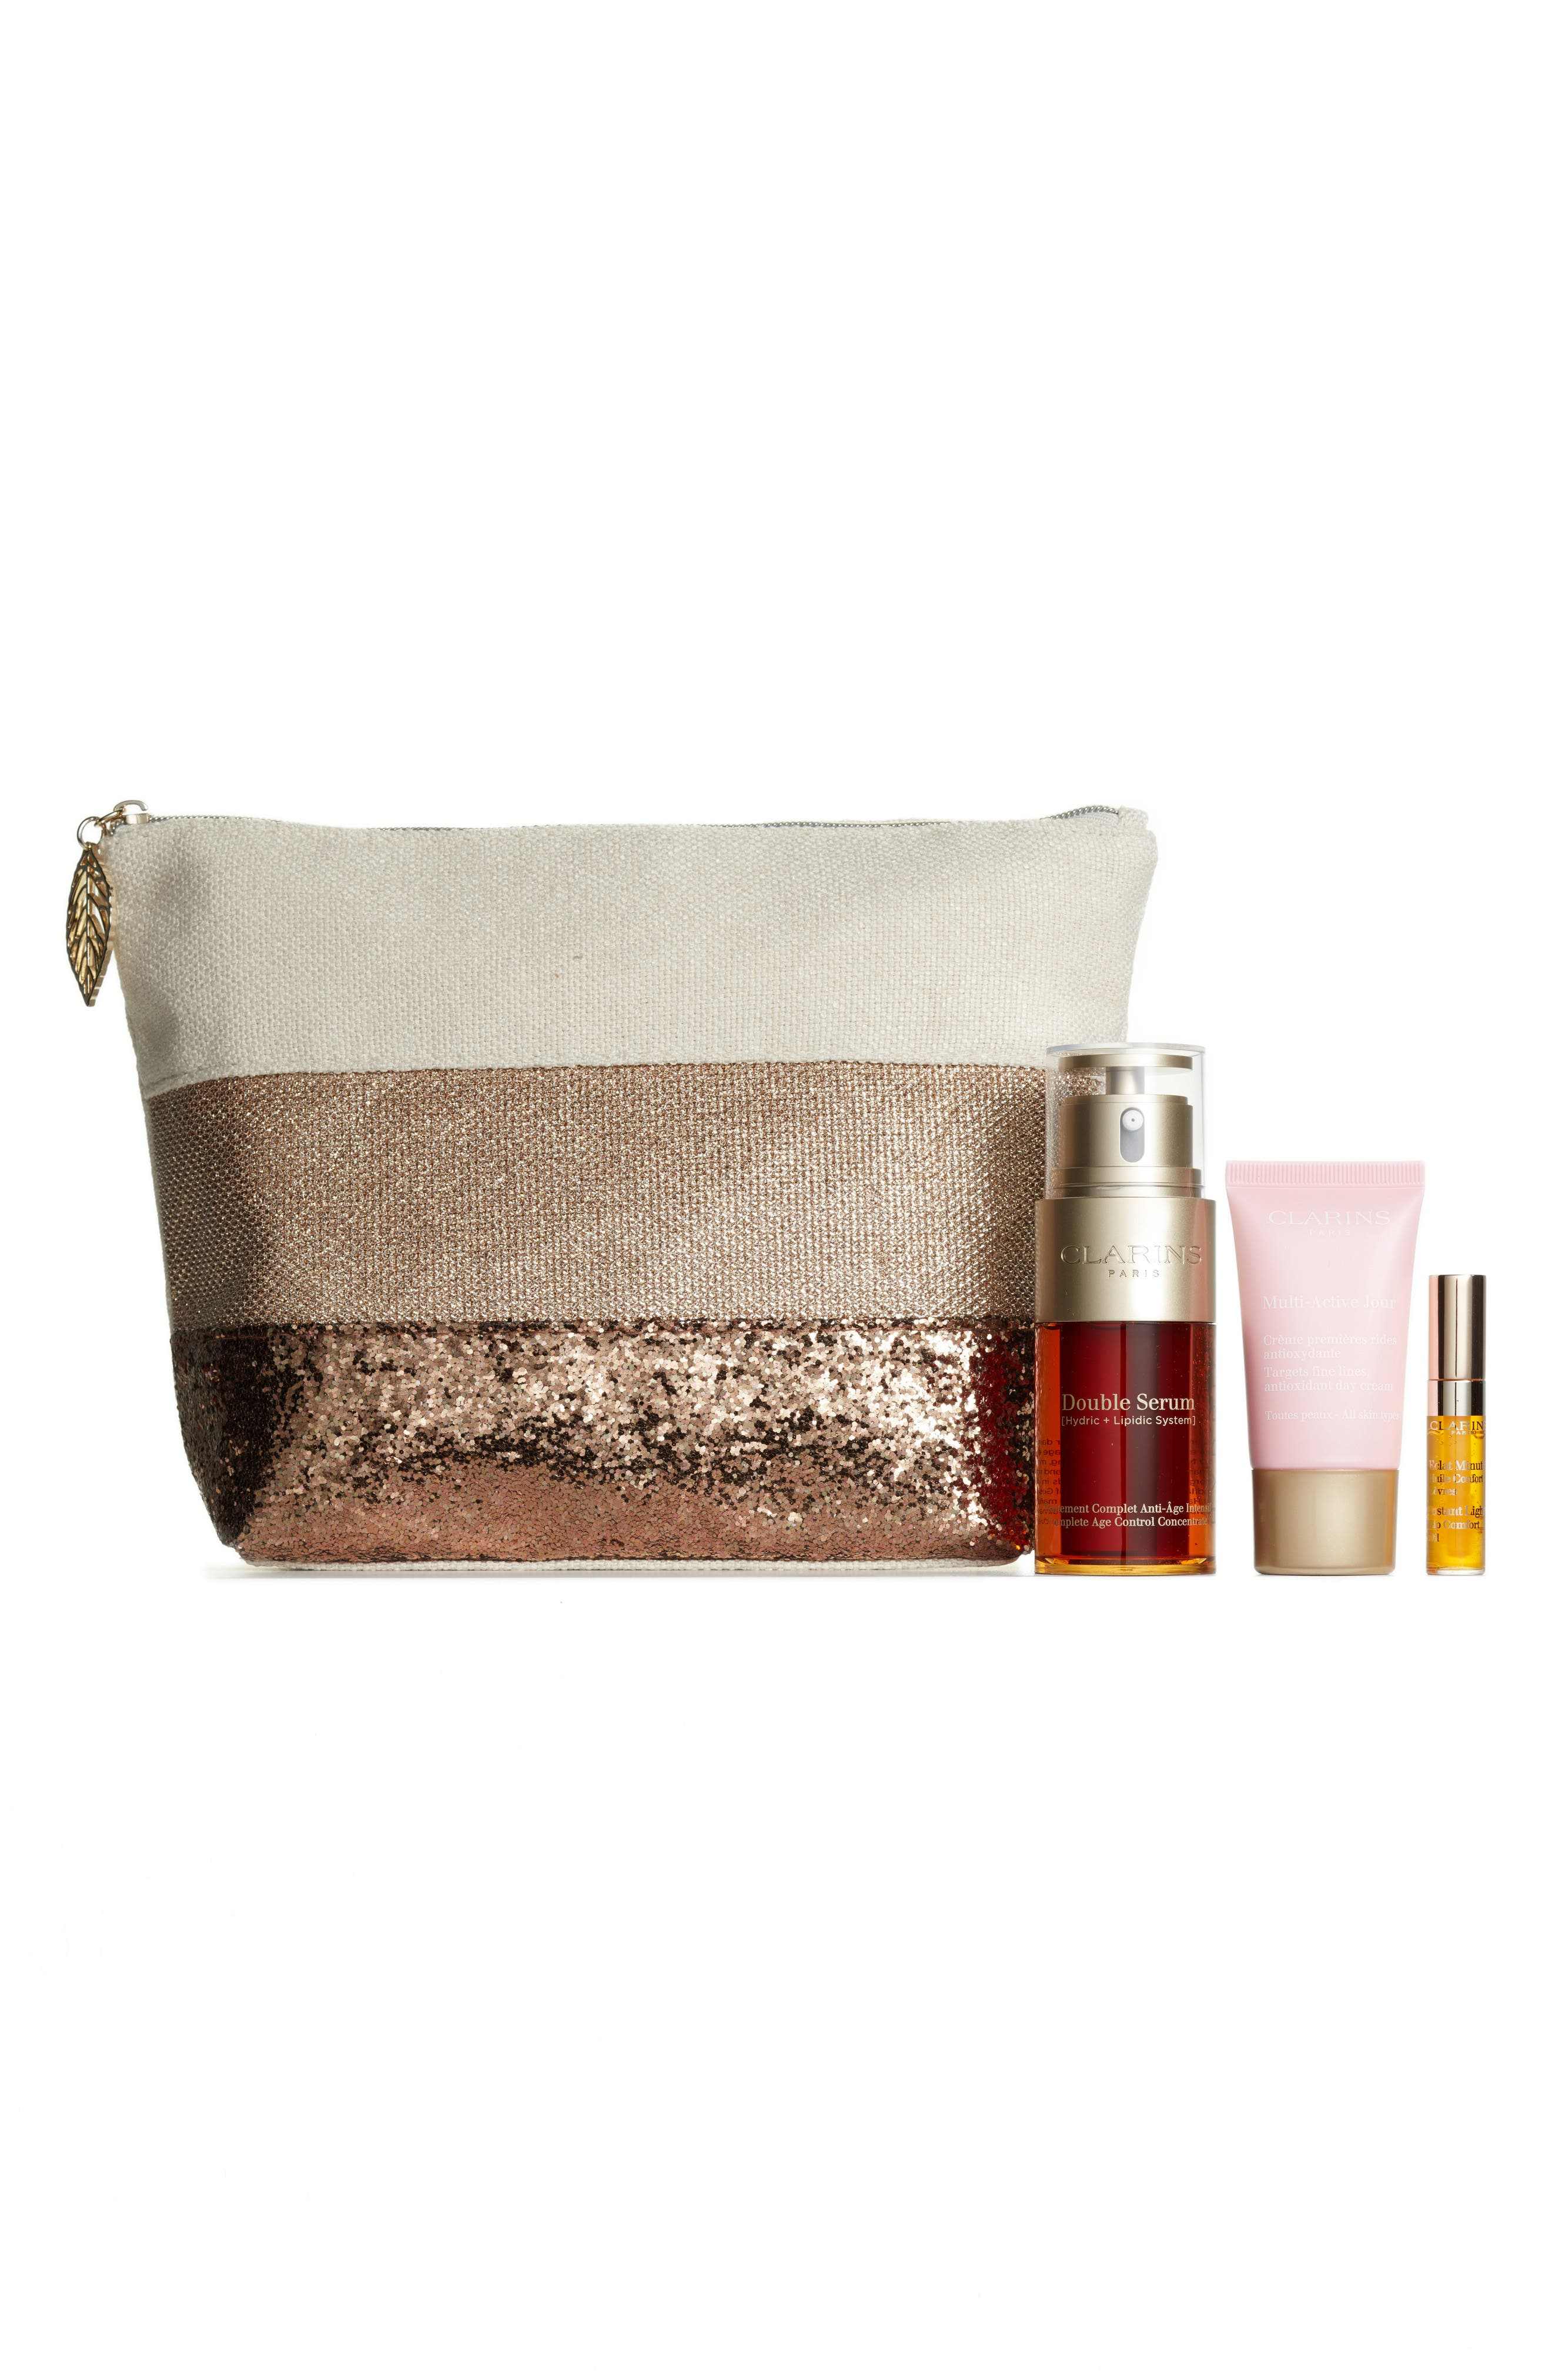 Alternate Image 1 Selected - Clarins Multi-Active Double Serum Set (Over $115 Value)